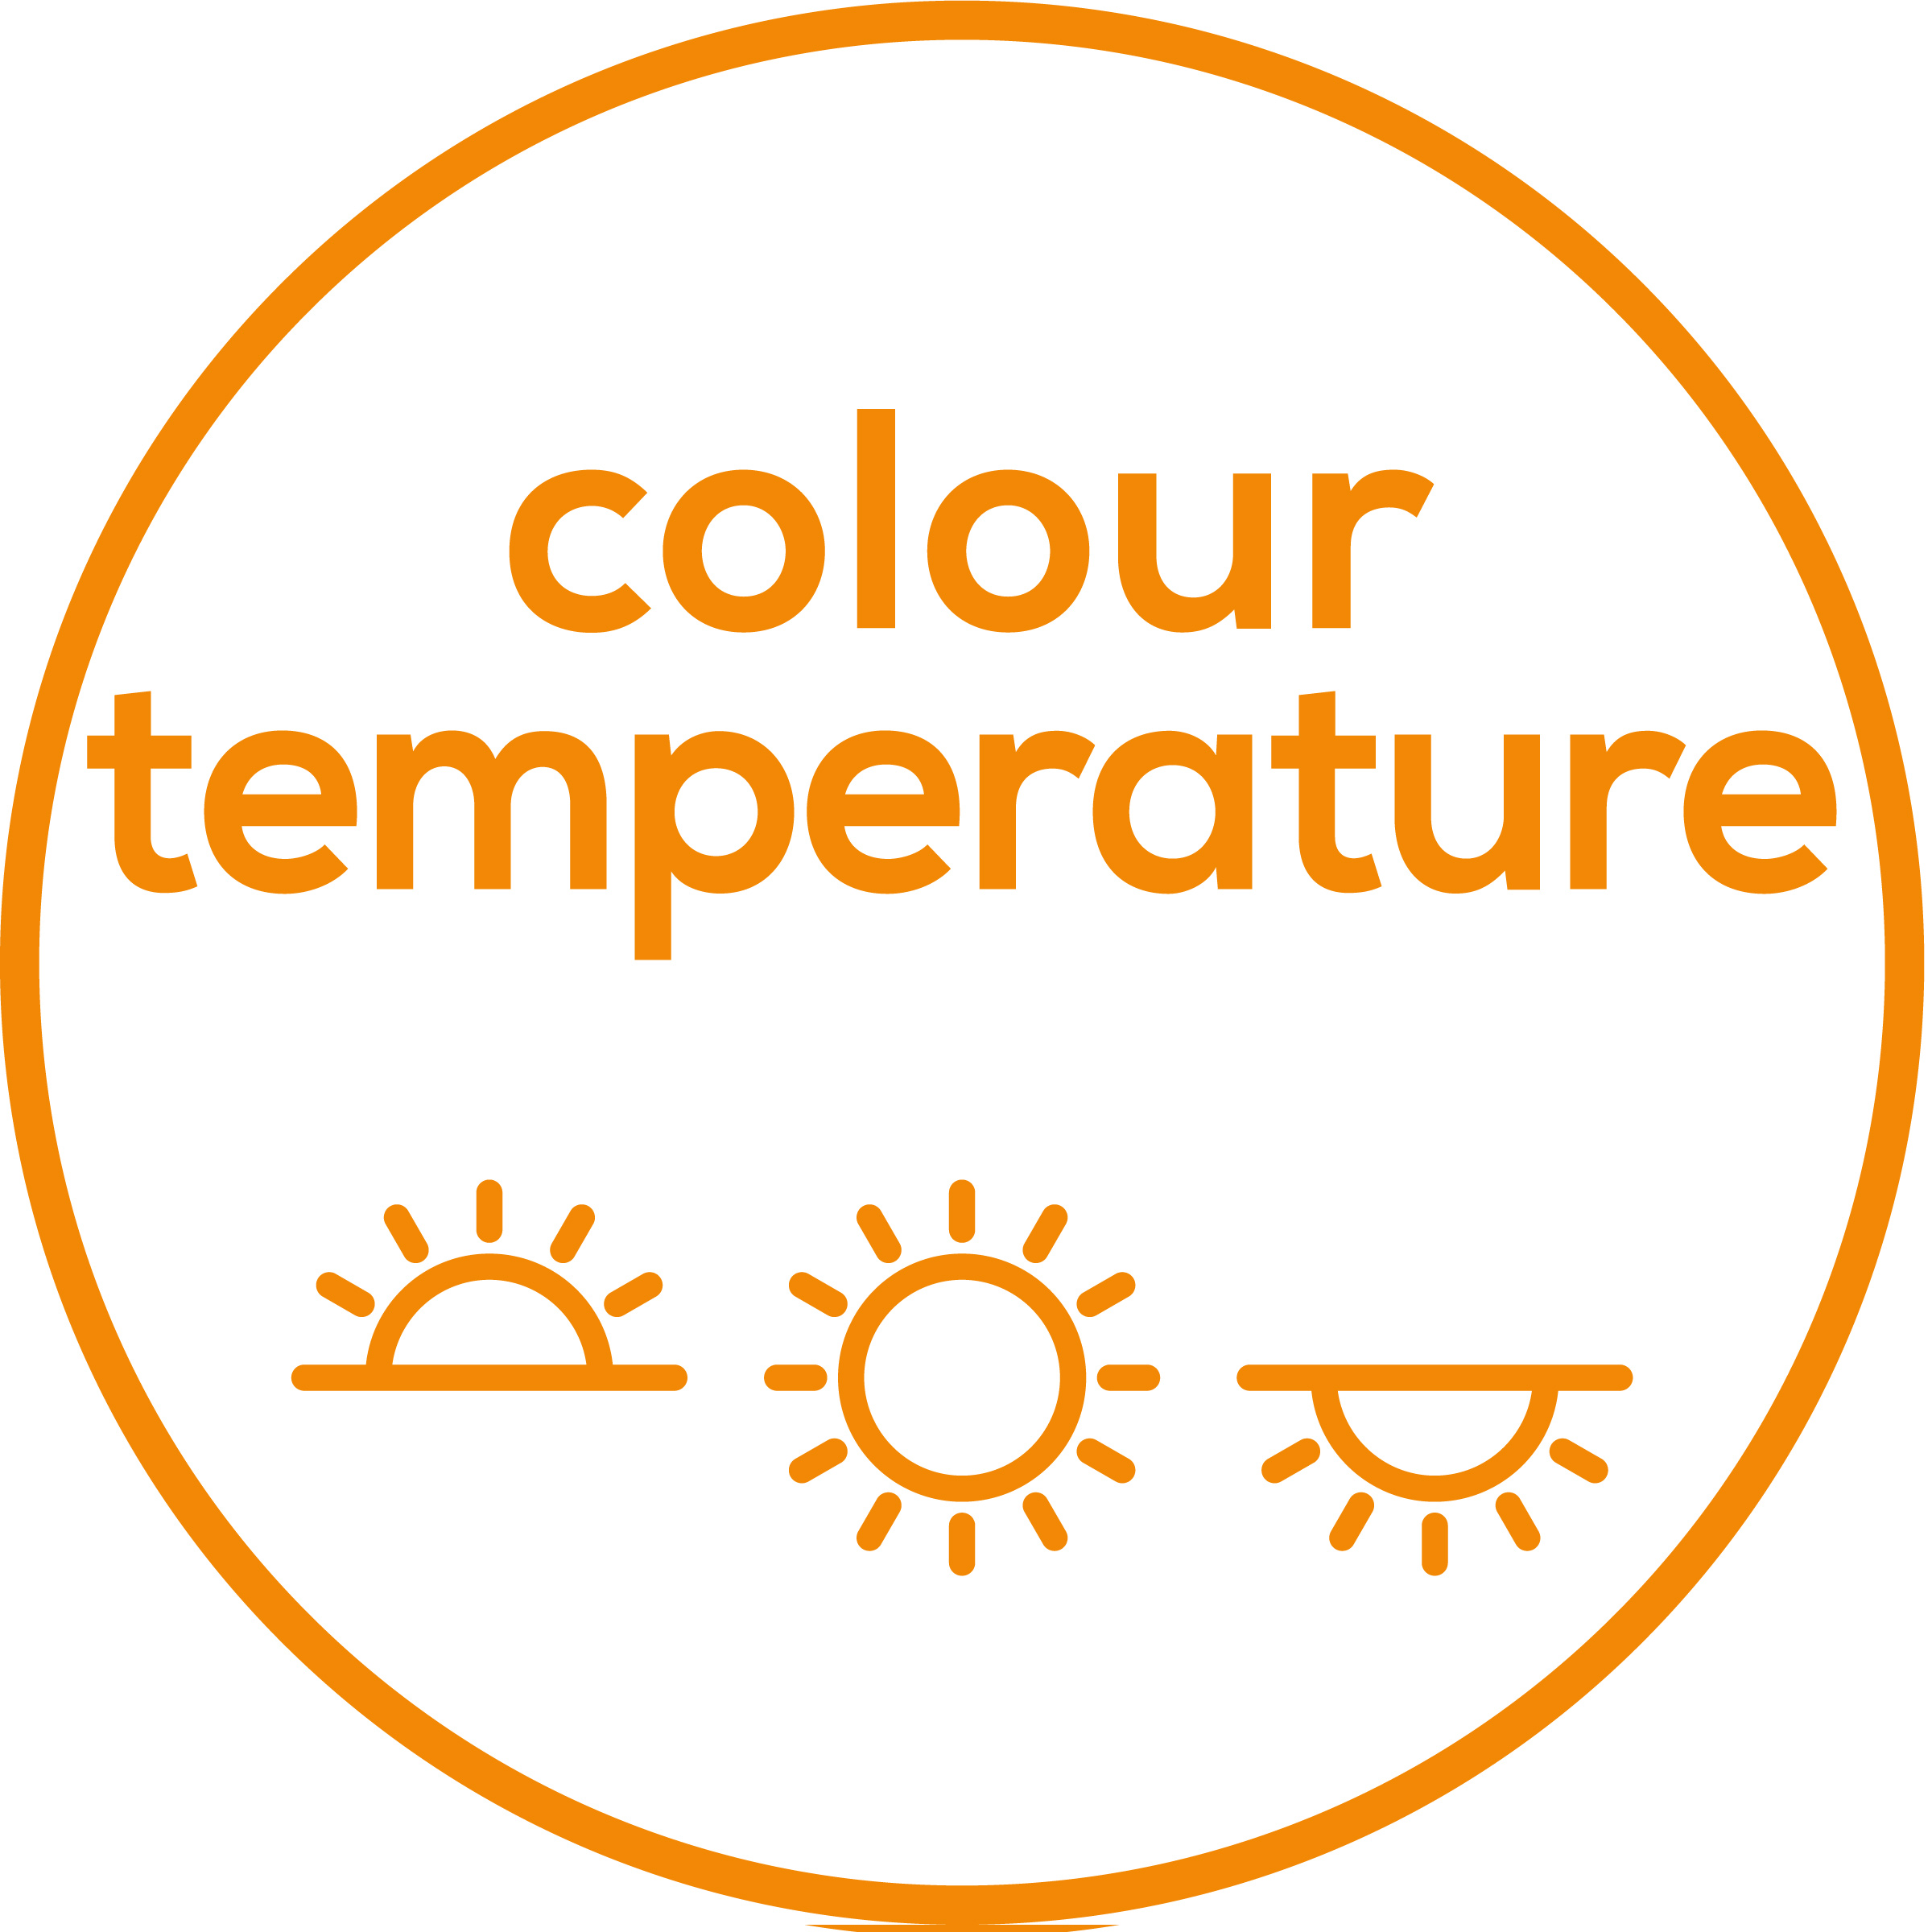 Colour temperature 3 colour temperature settings for a regulated day-night rhythm